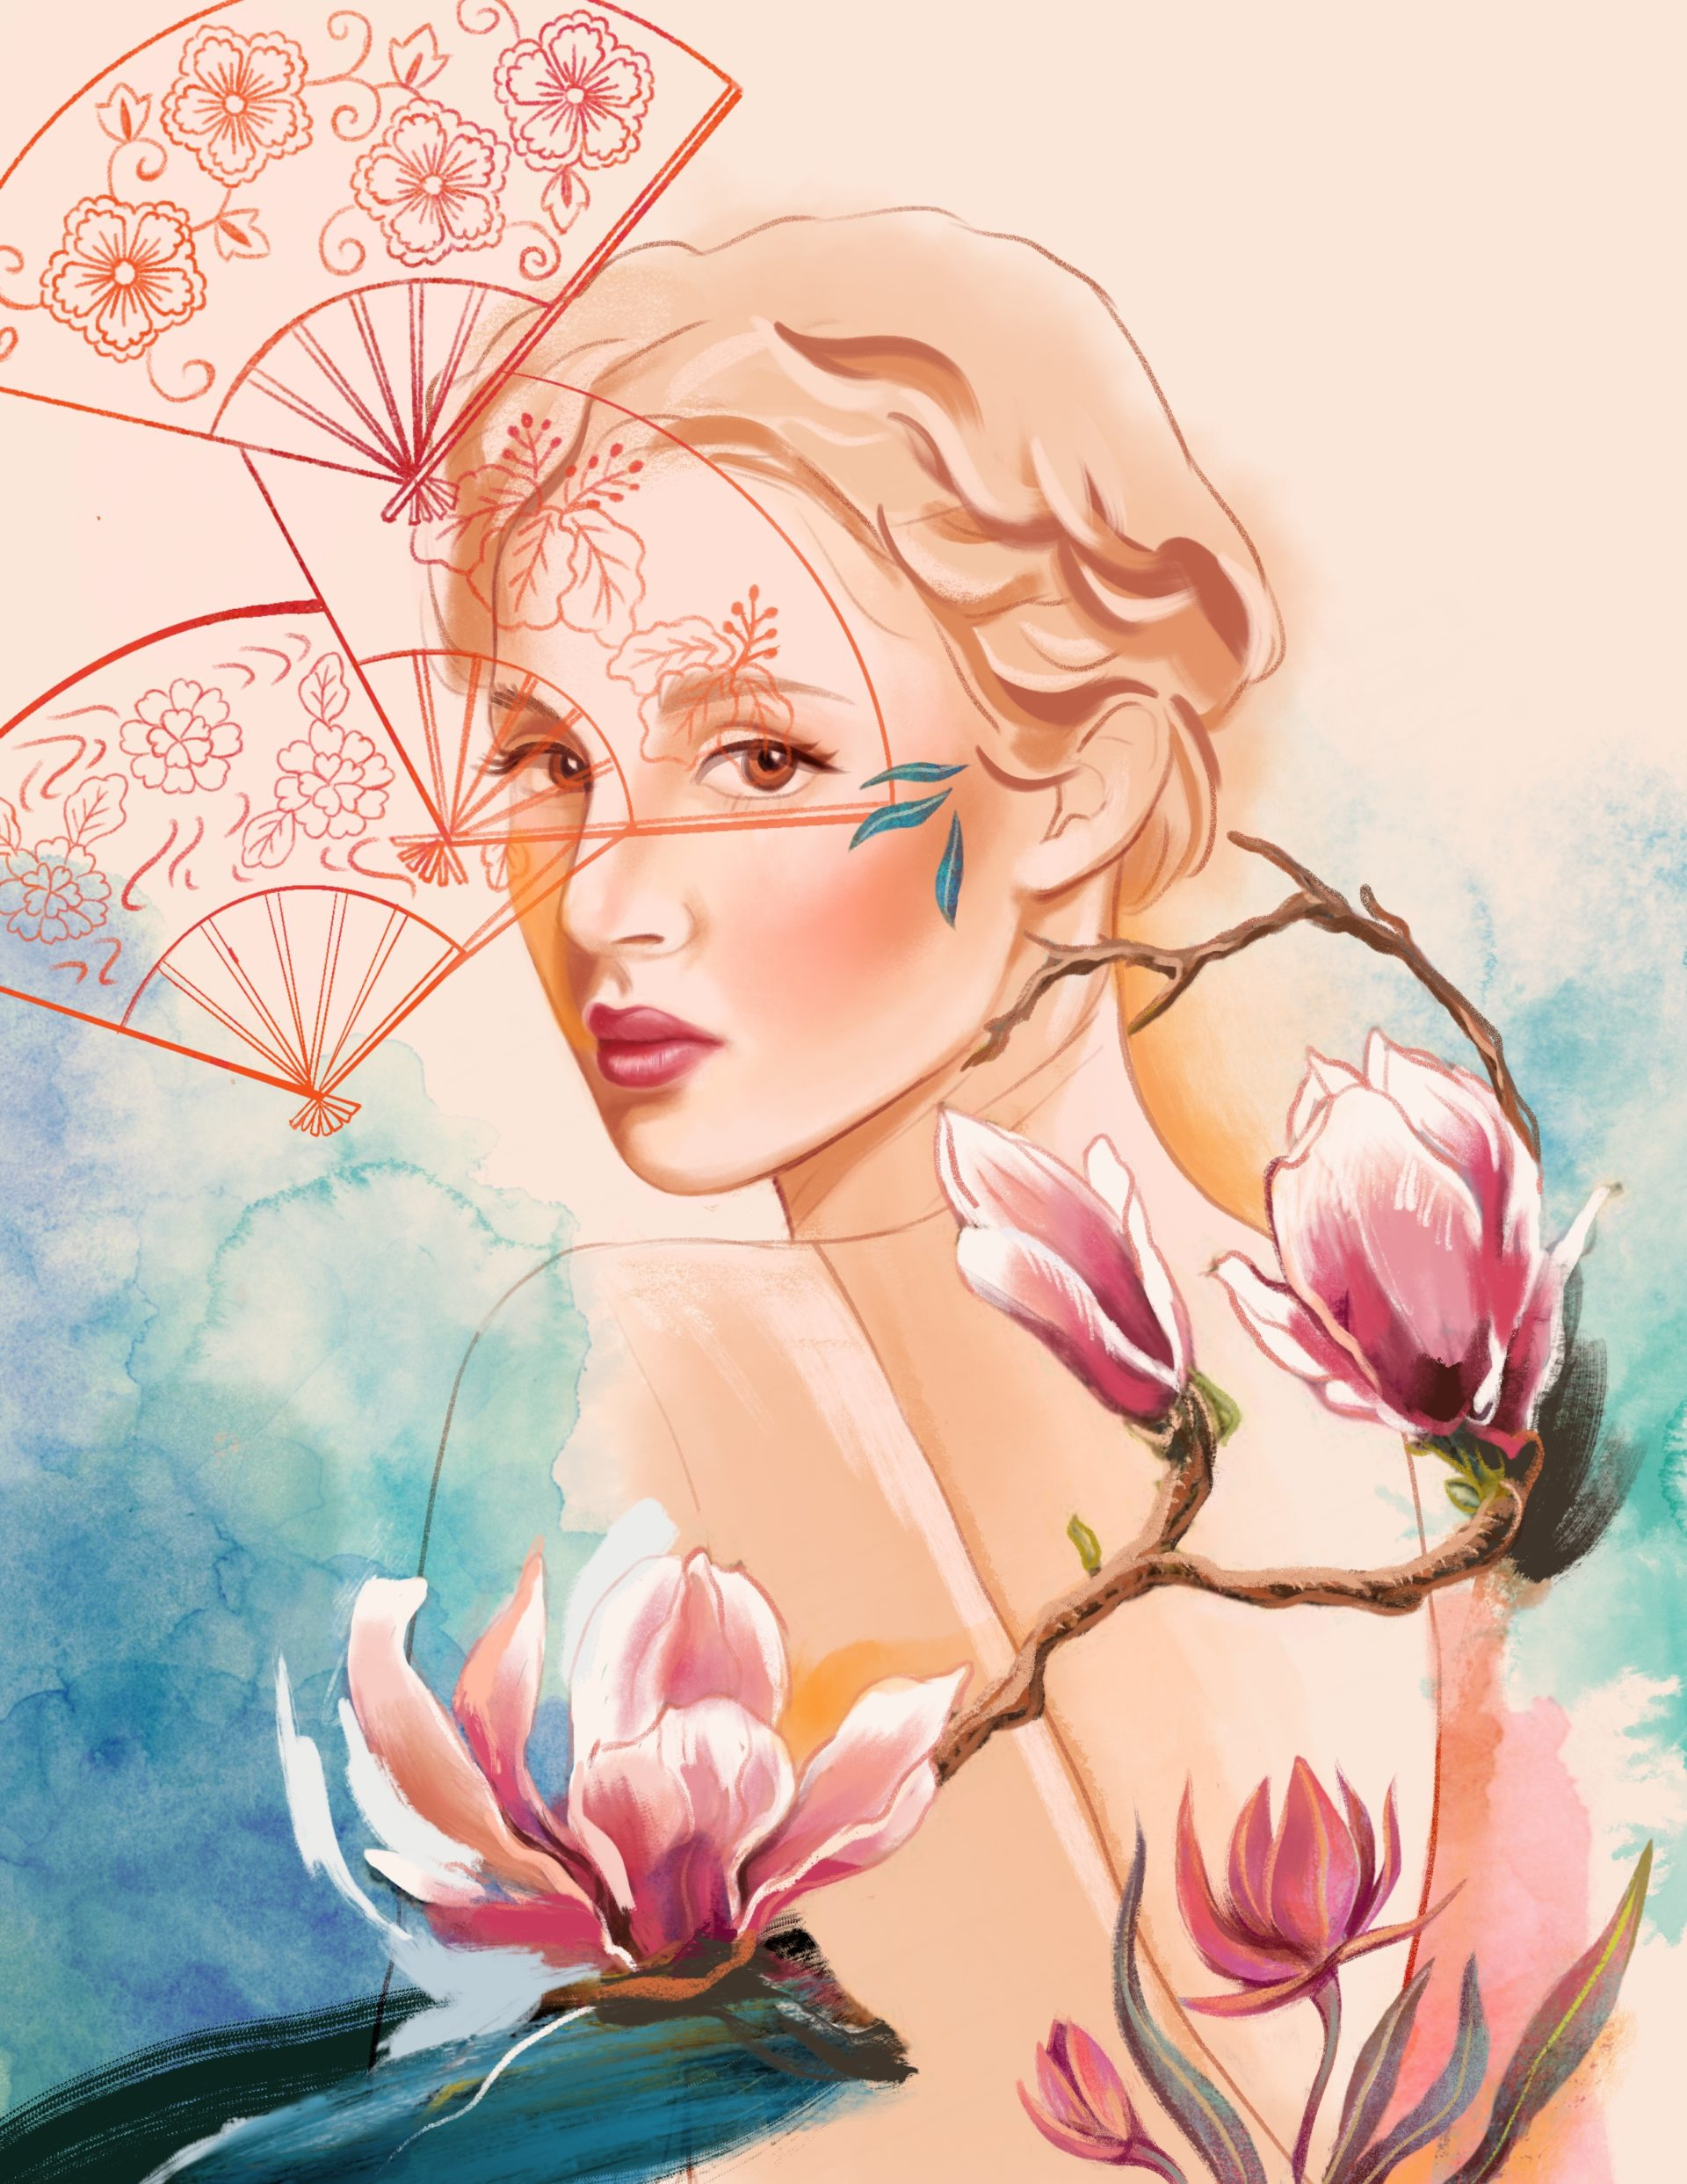 Illustration portrait woman, magnolia and fans